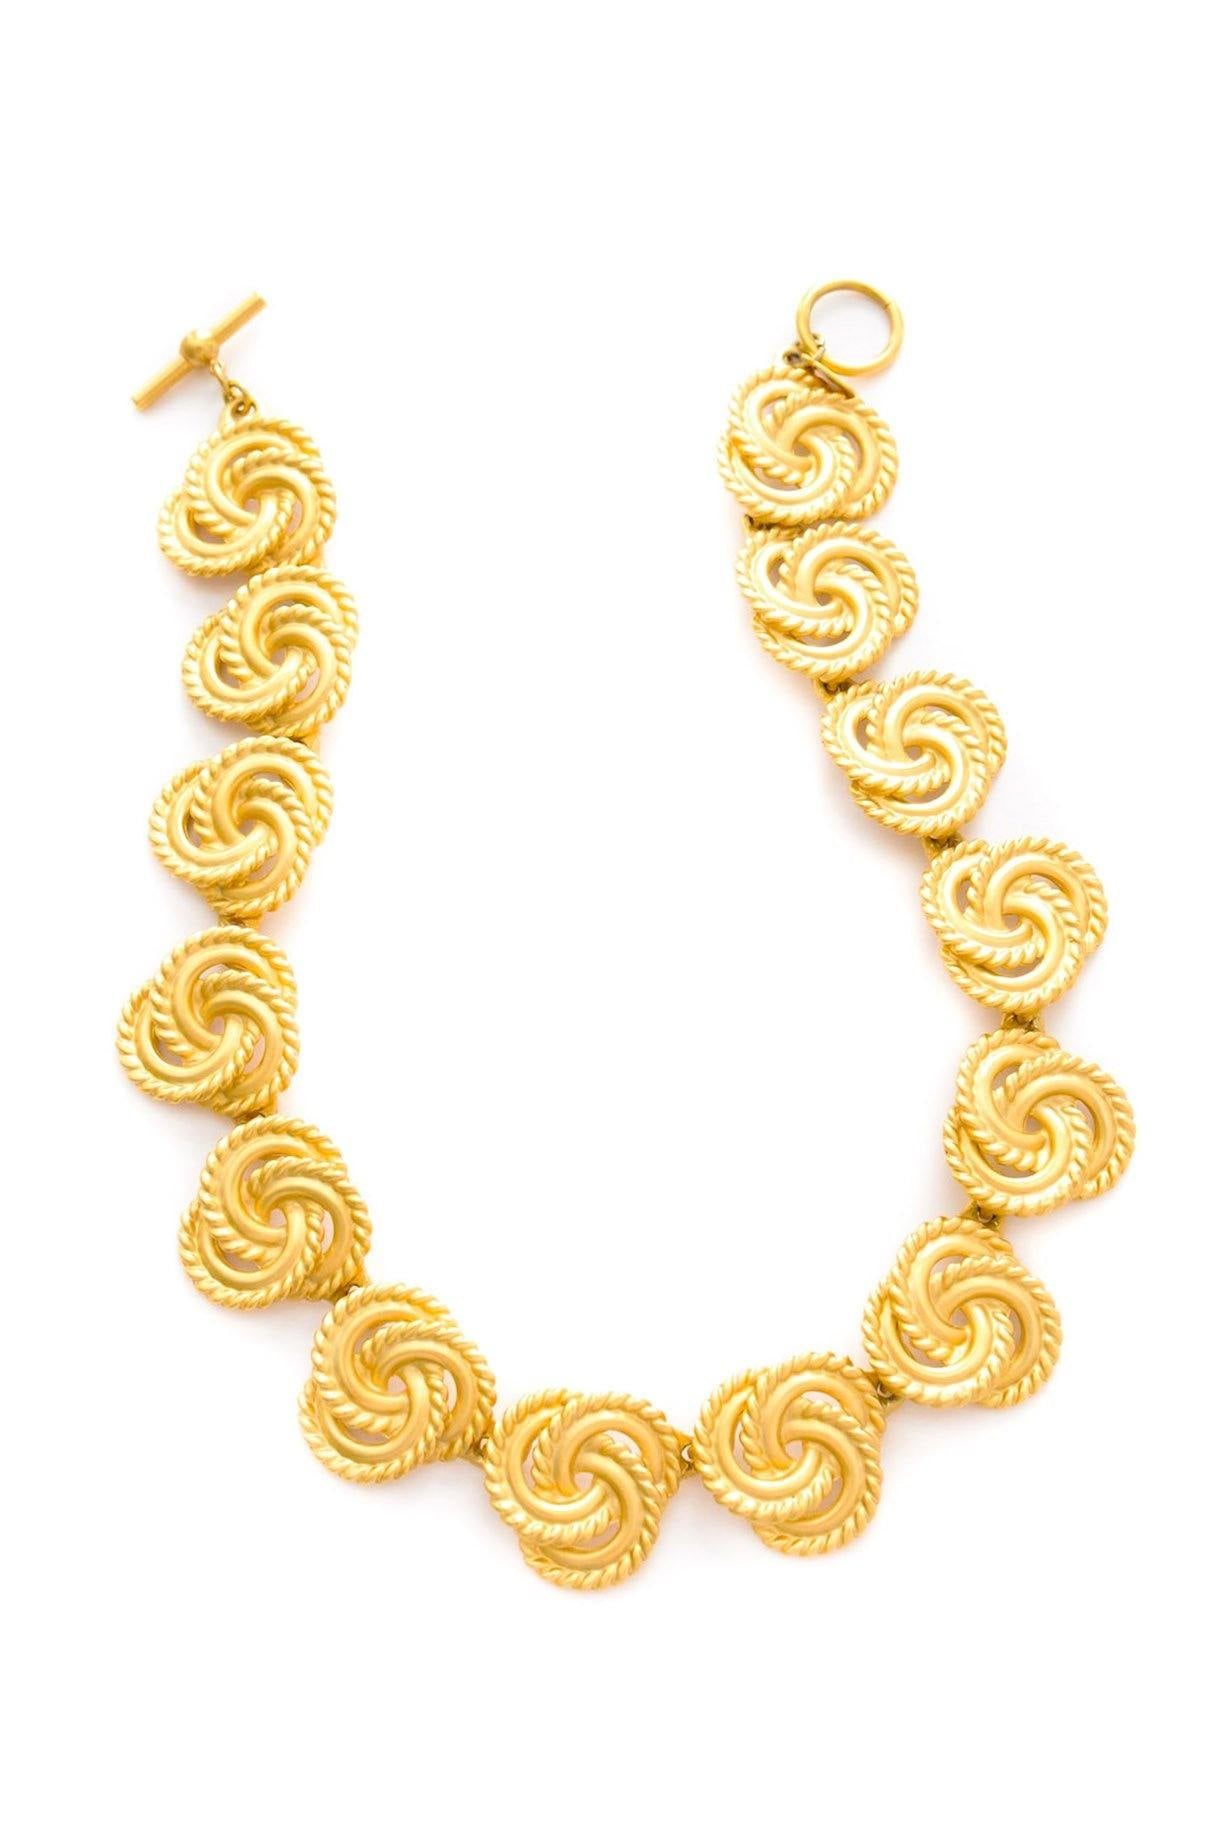 Chunky Statement Knot Necklace